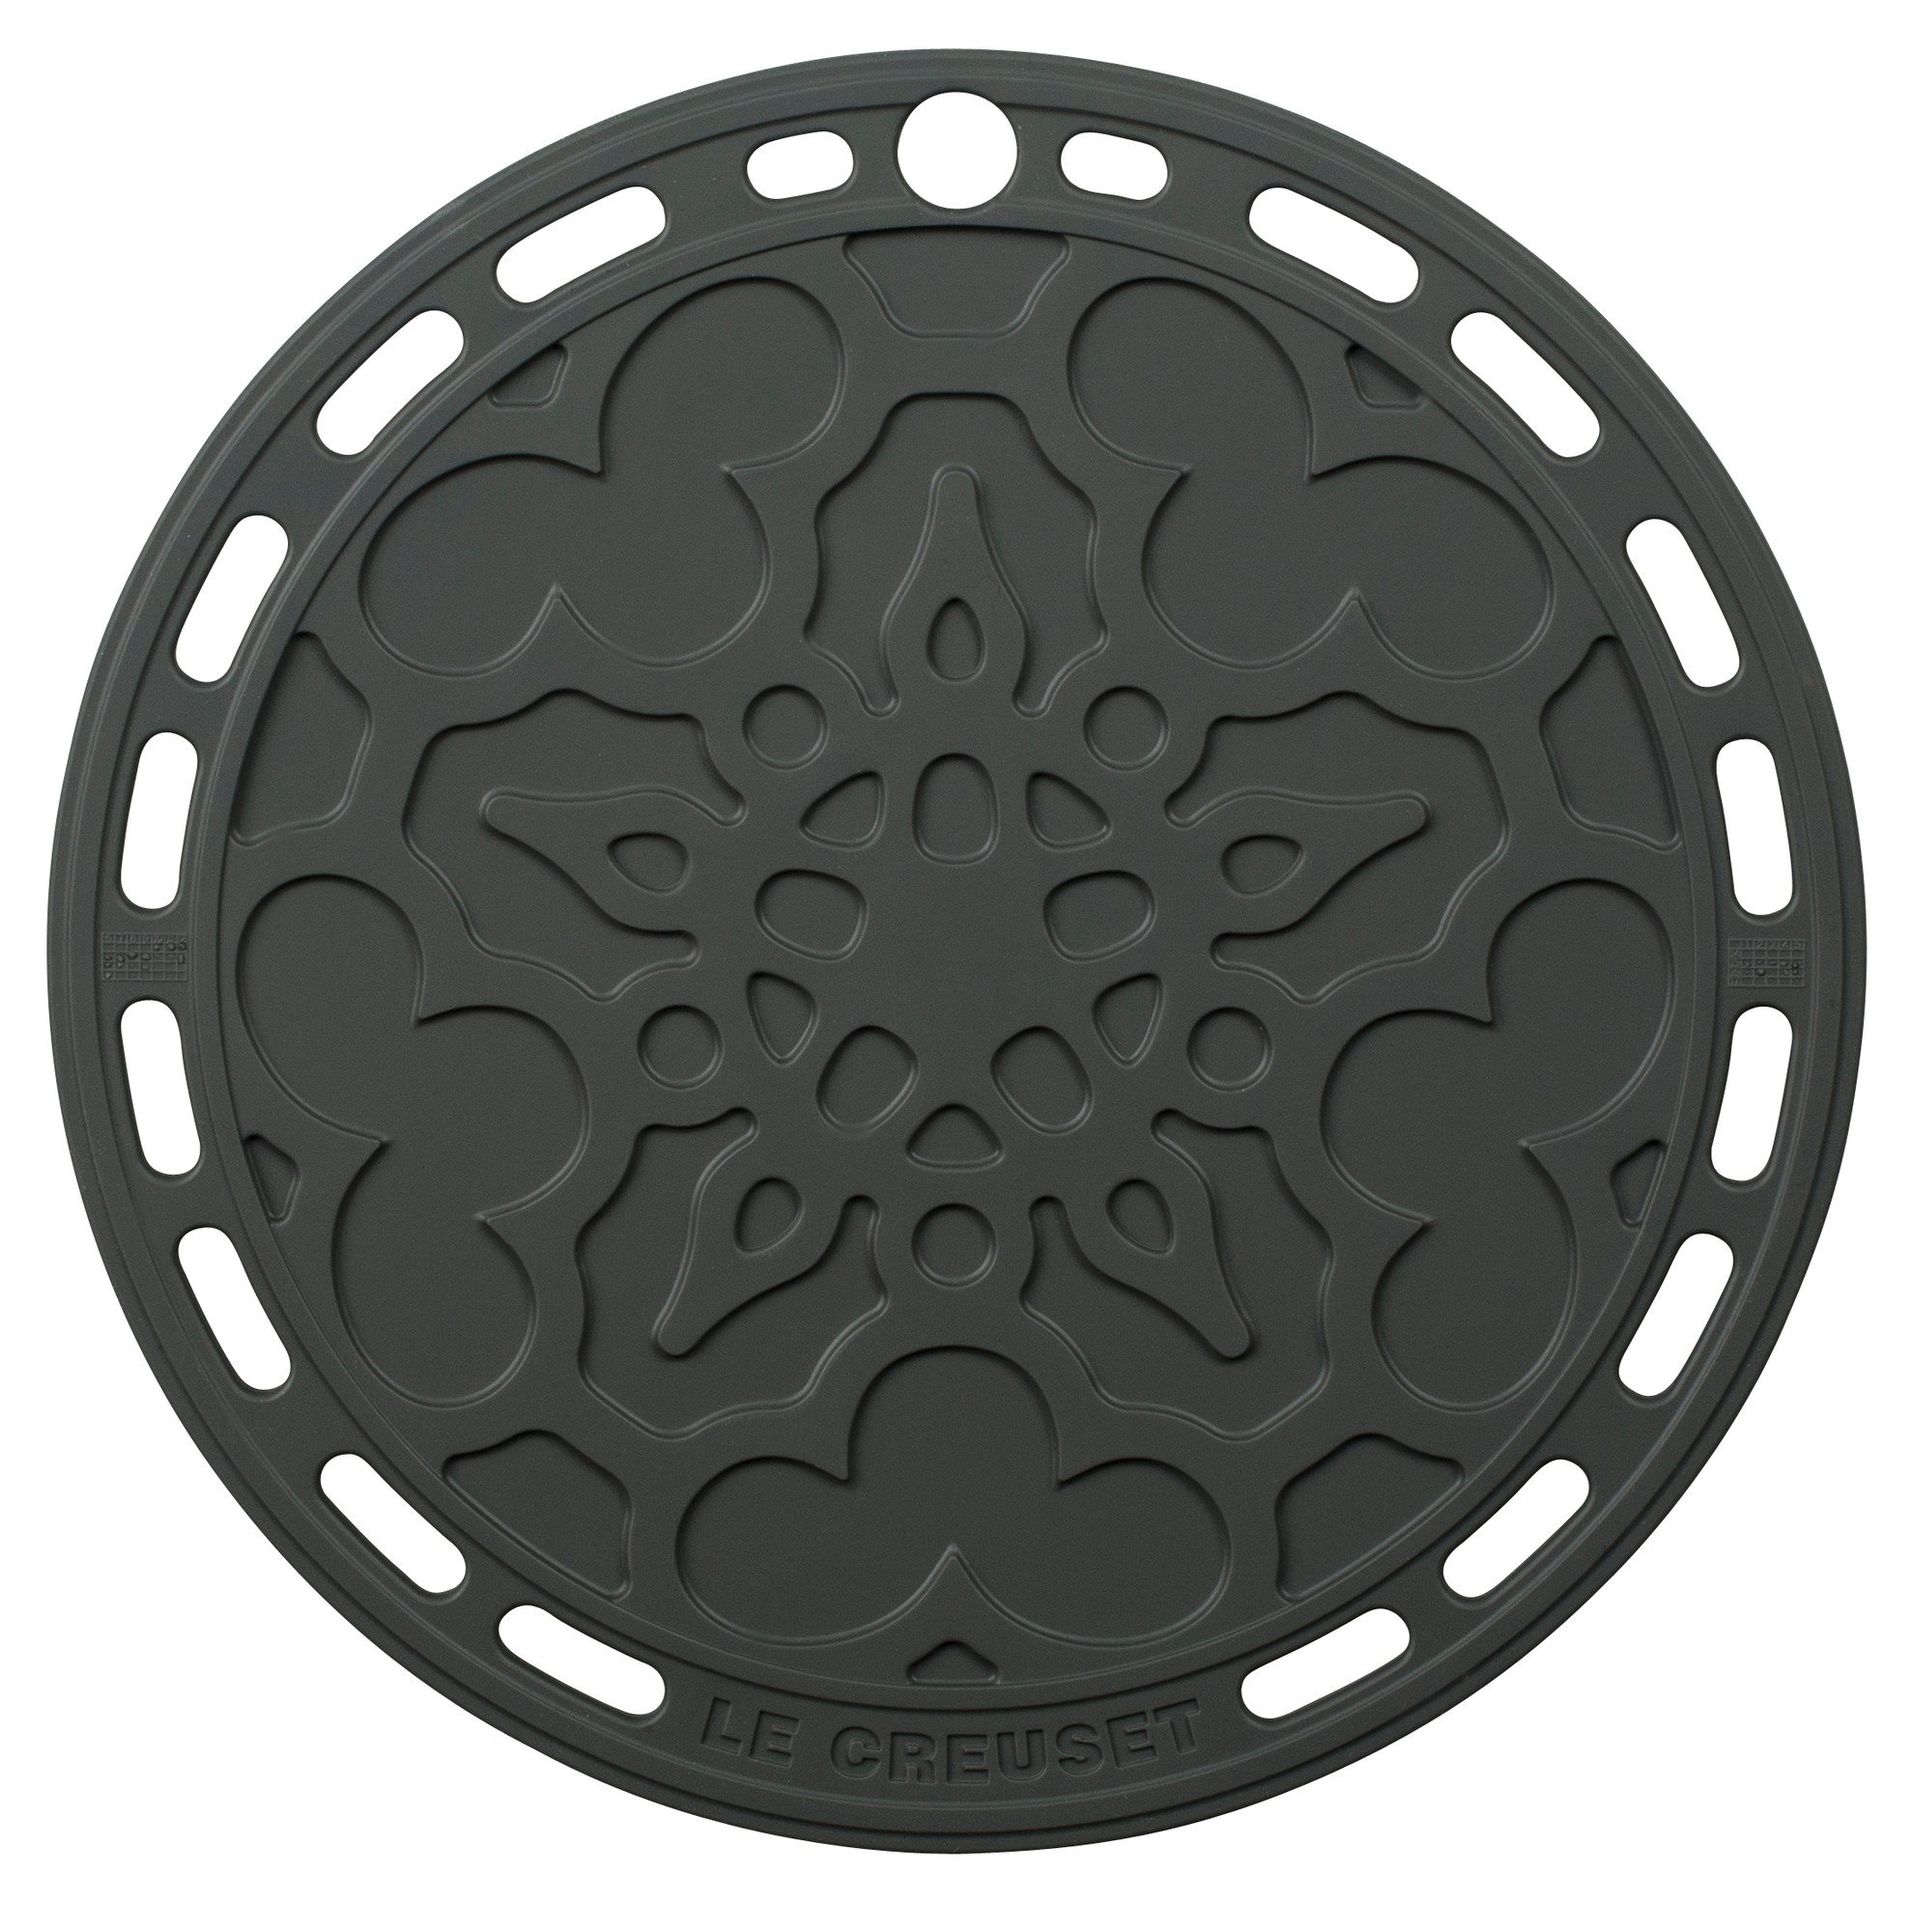 Le Creuset Silicone 8'' Round French Trivet, Oyster